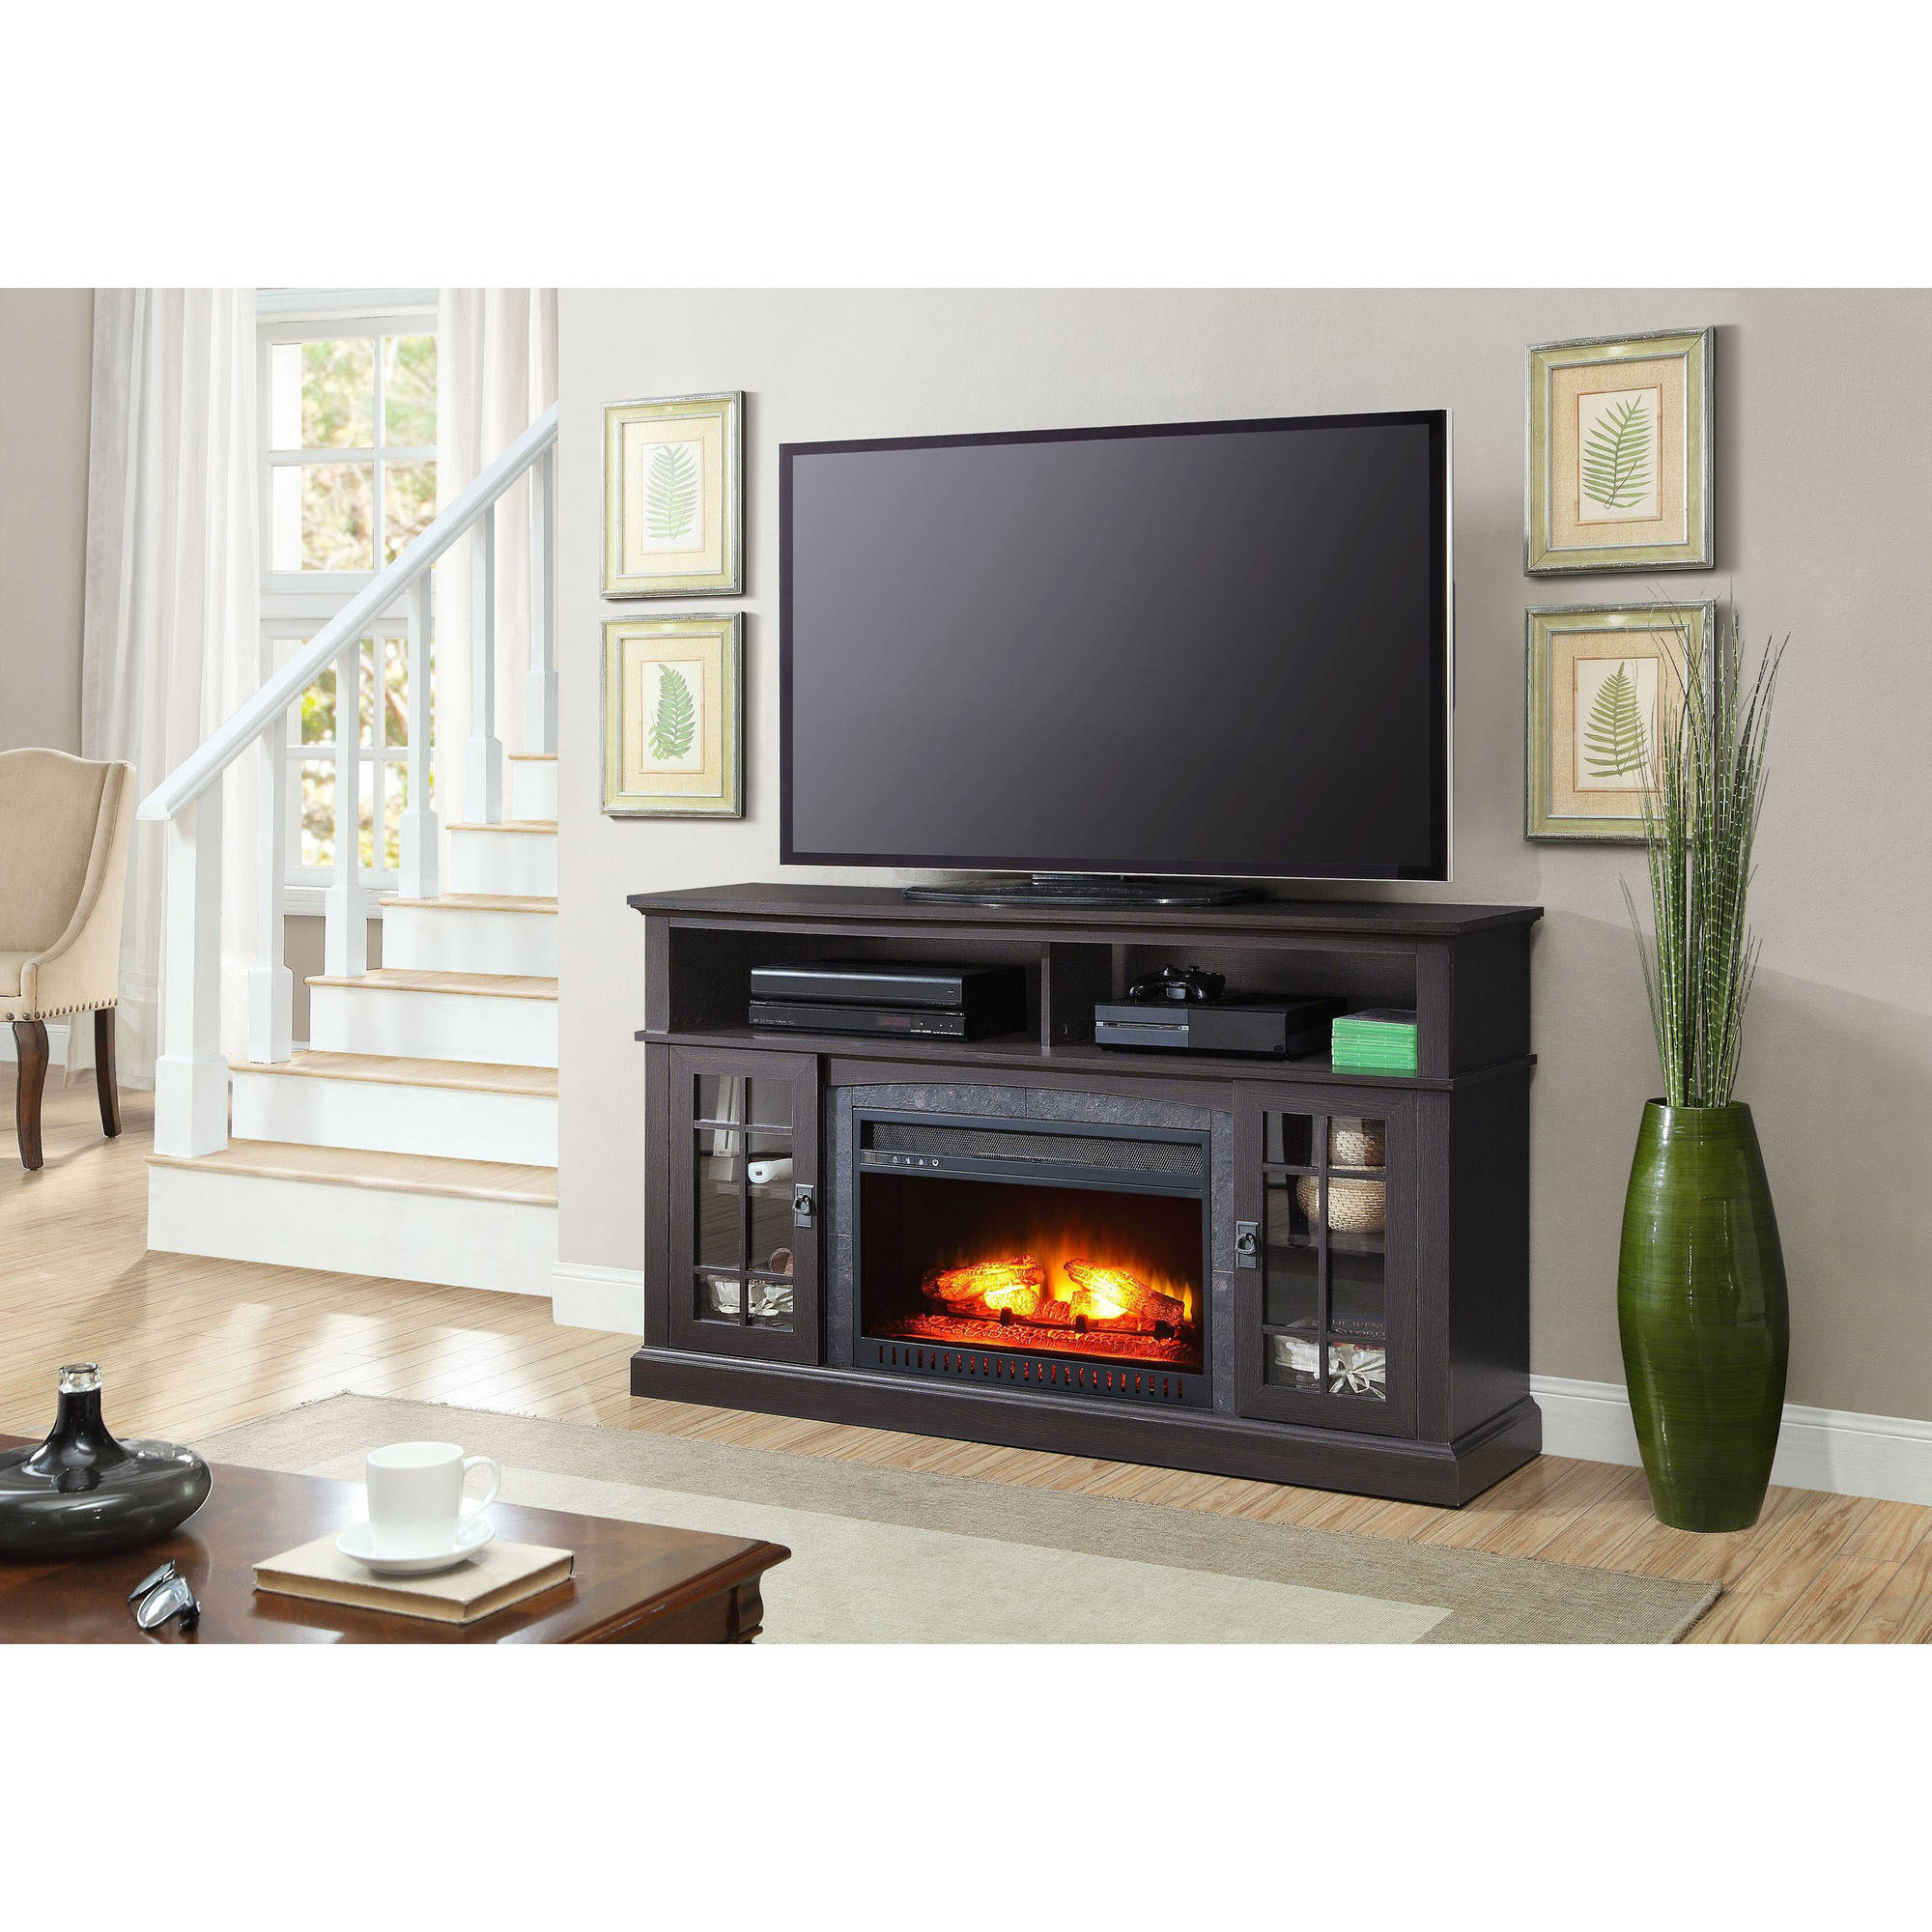 Better Homes and Gardens Mission Media Fireplace for TVs up to 65""